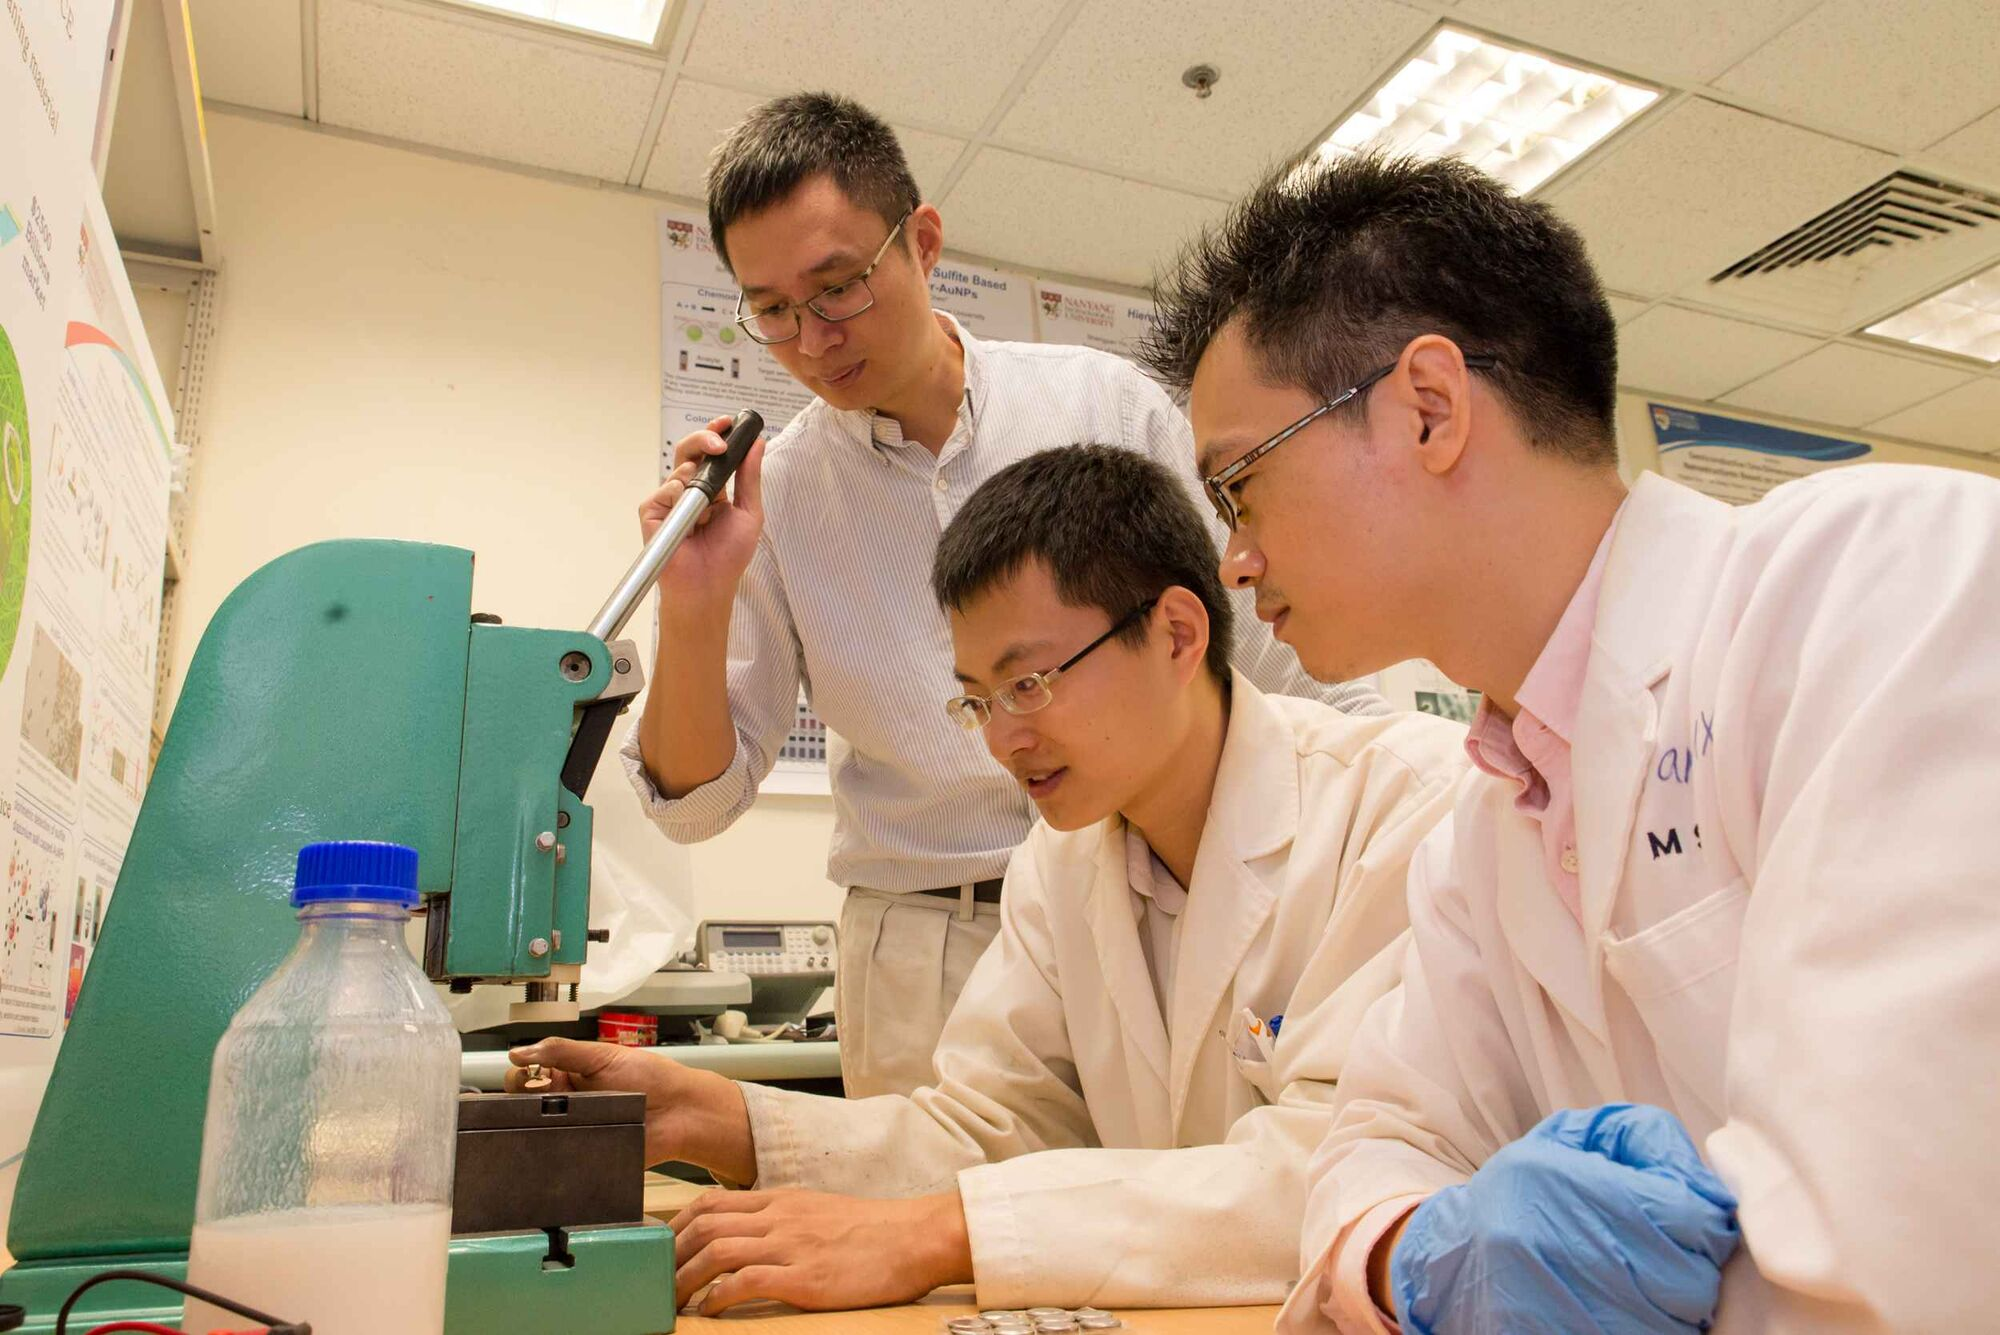 Prof. Chen Xiaodong (from left) supervises research fellow Tang Yuxin and PhD student Deng Jiyang in the making of a rechargeable battery.